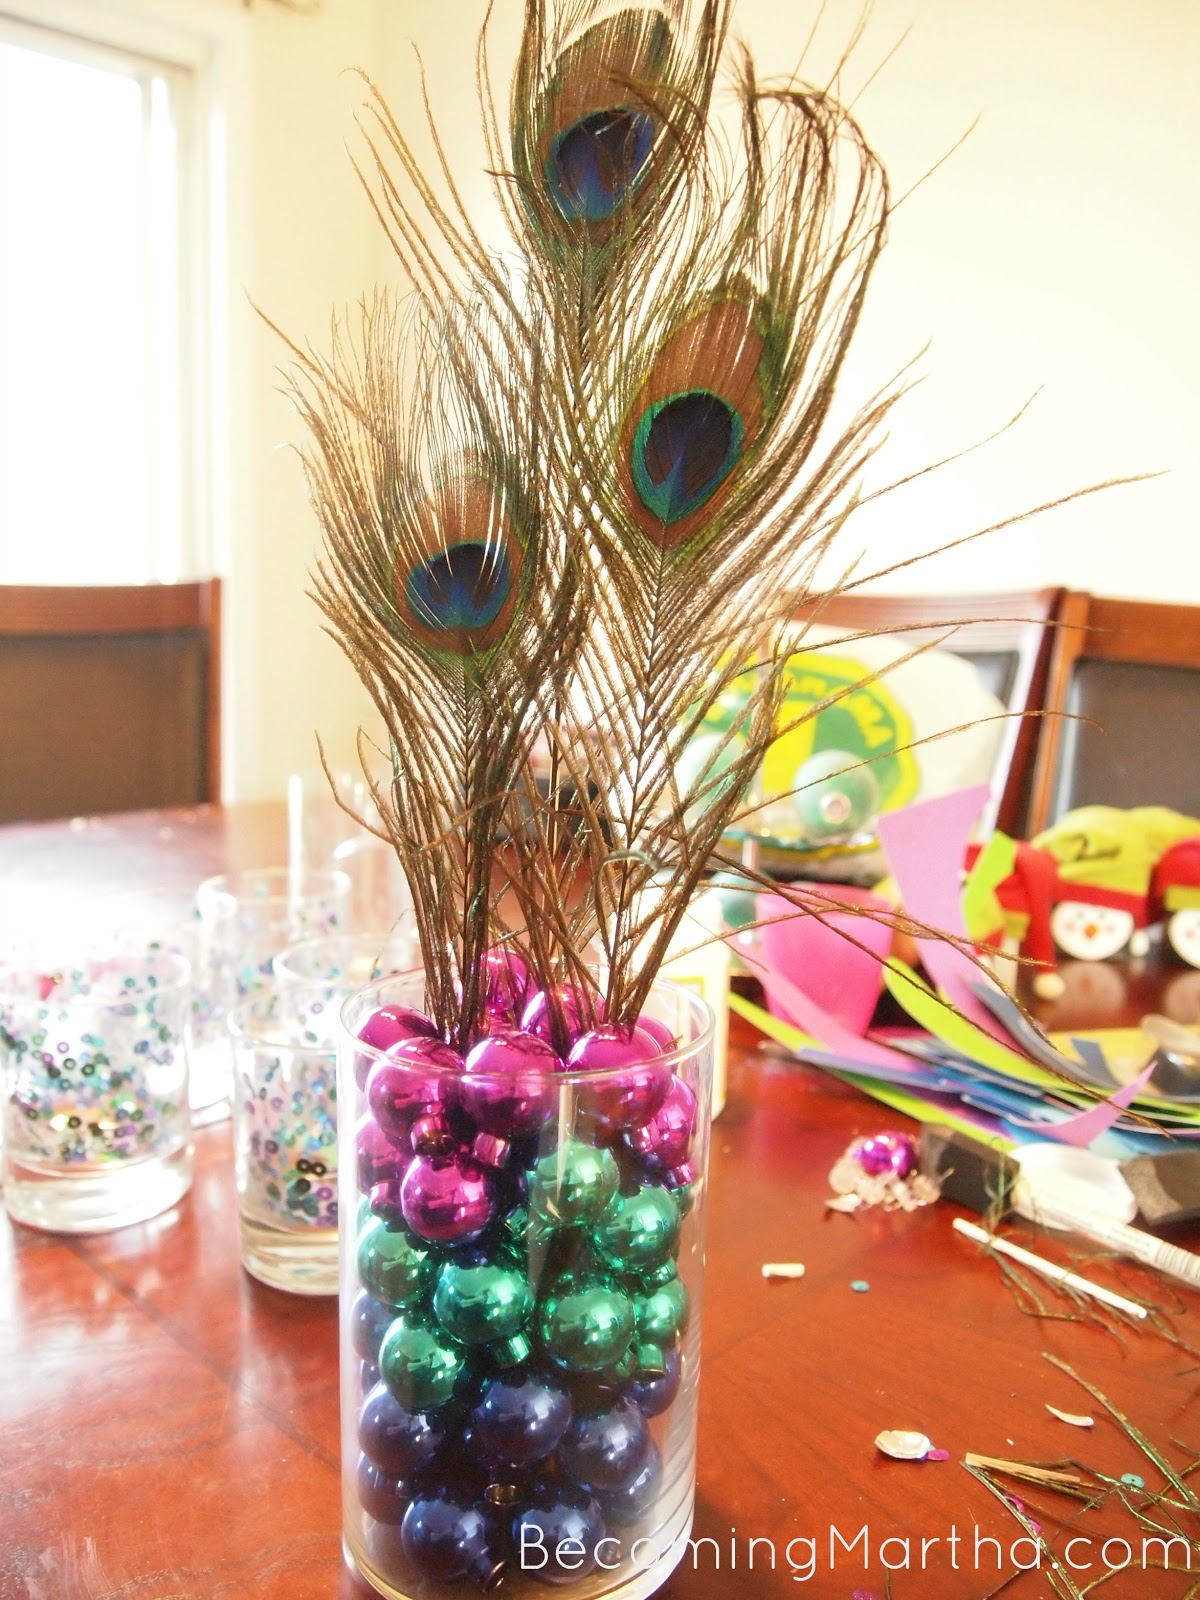 Peacock centerpiece for a party or modern christmas decor